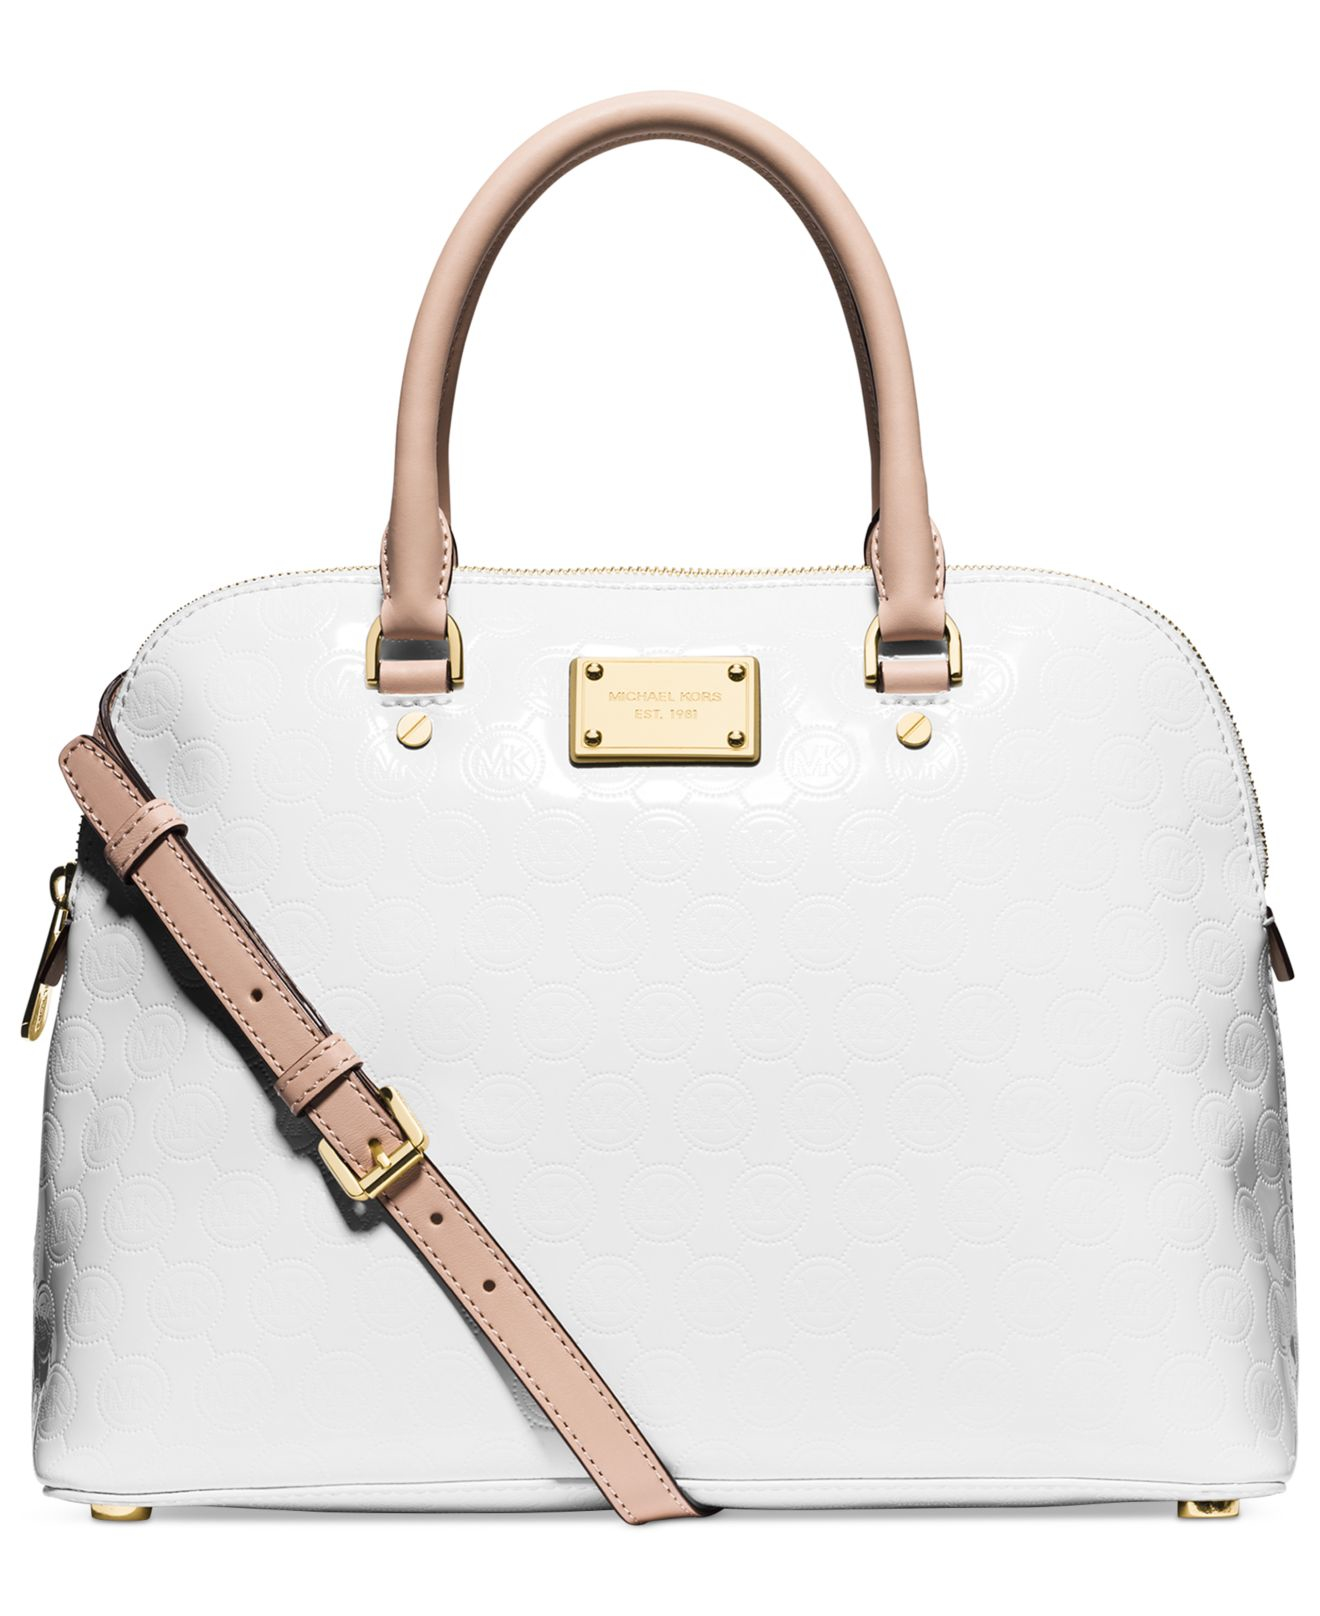 effb9541240f3a Gallery. Previously sold at: Macy's · Women's Michael Kors Cindy